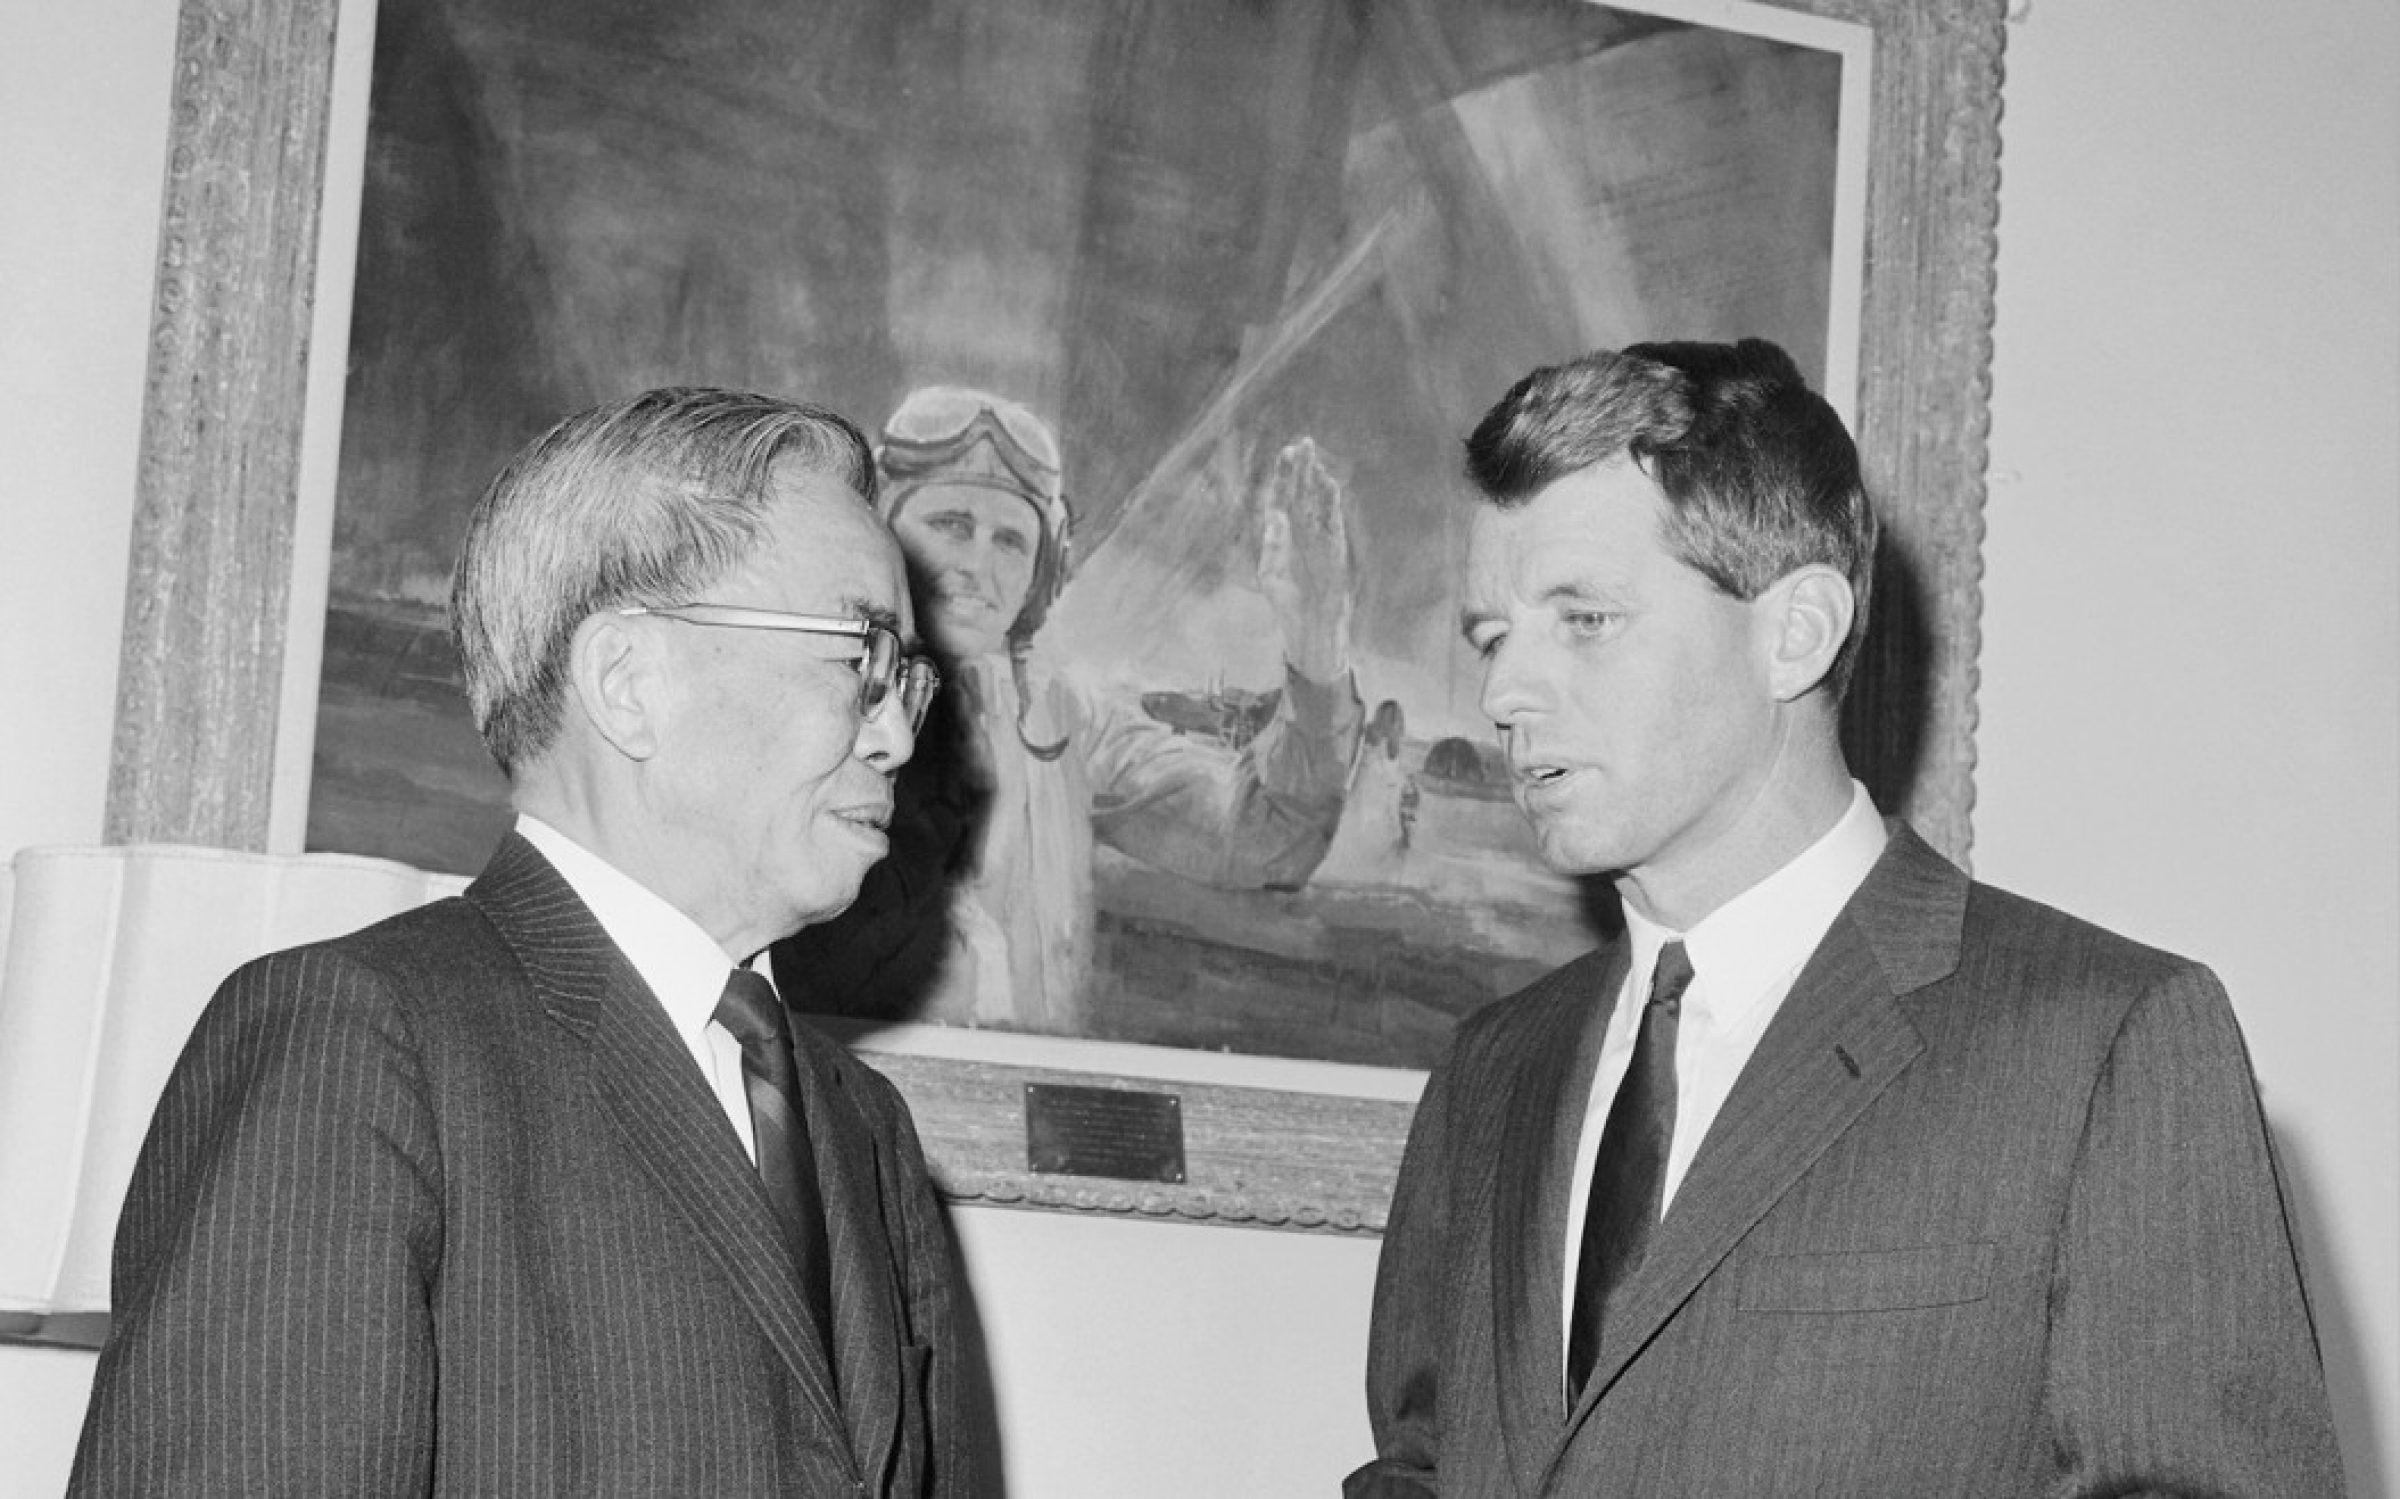 Tsiang Tingfu, left, with Senator Robert Kennedy, 1965. Credit: Getty Images